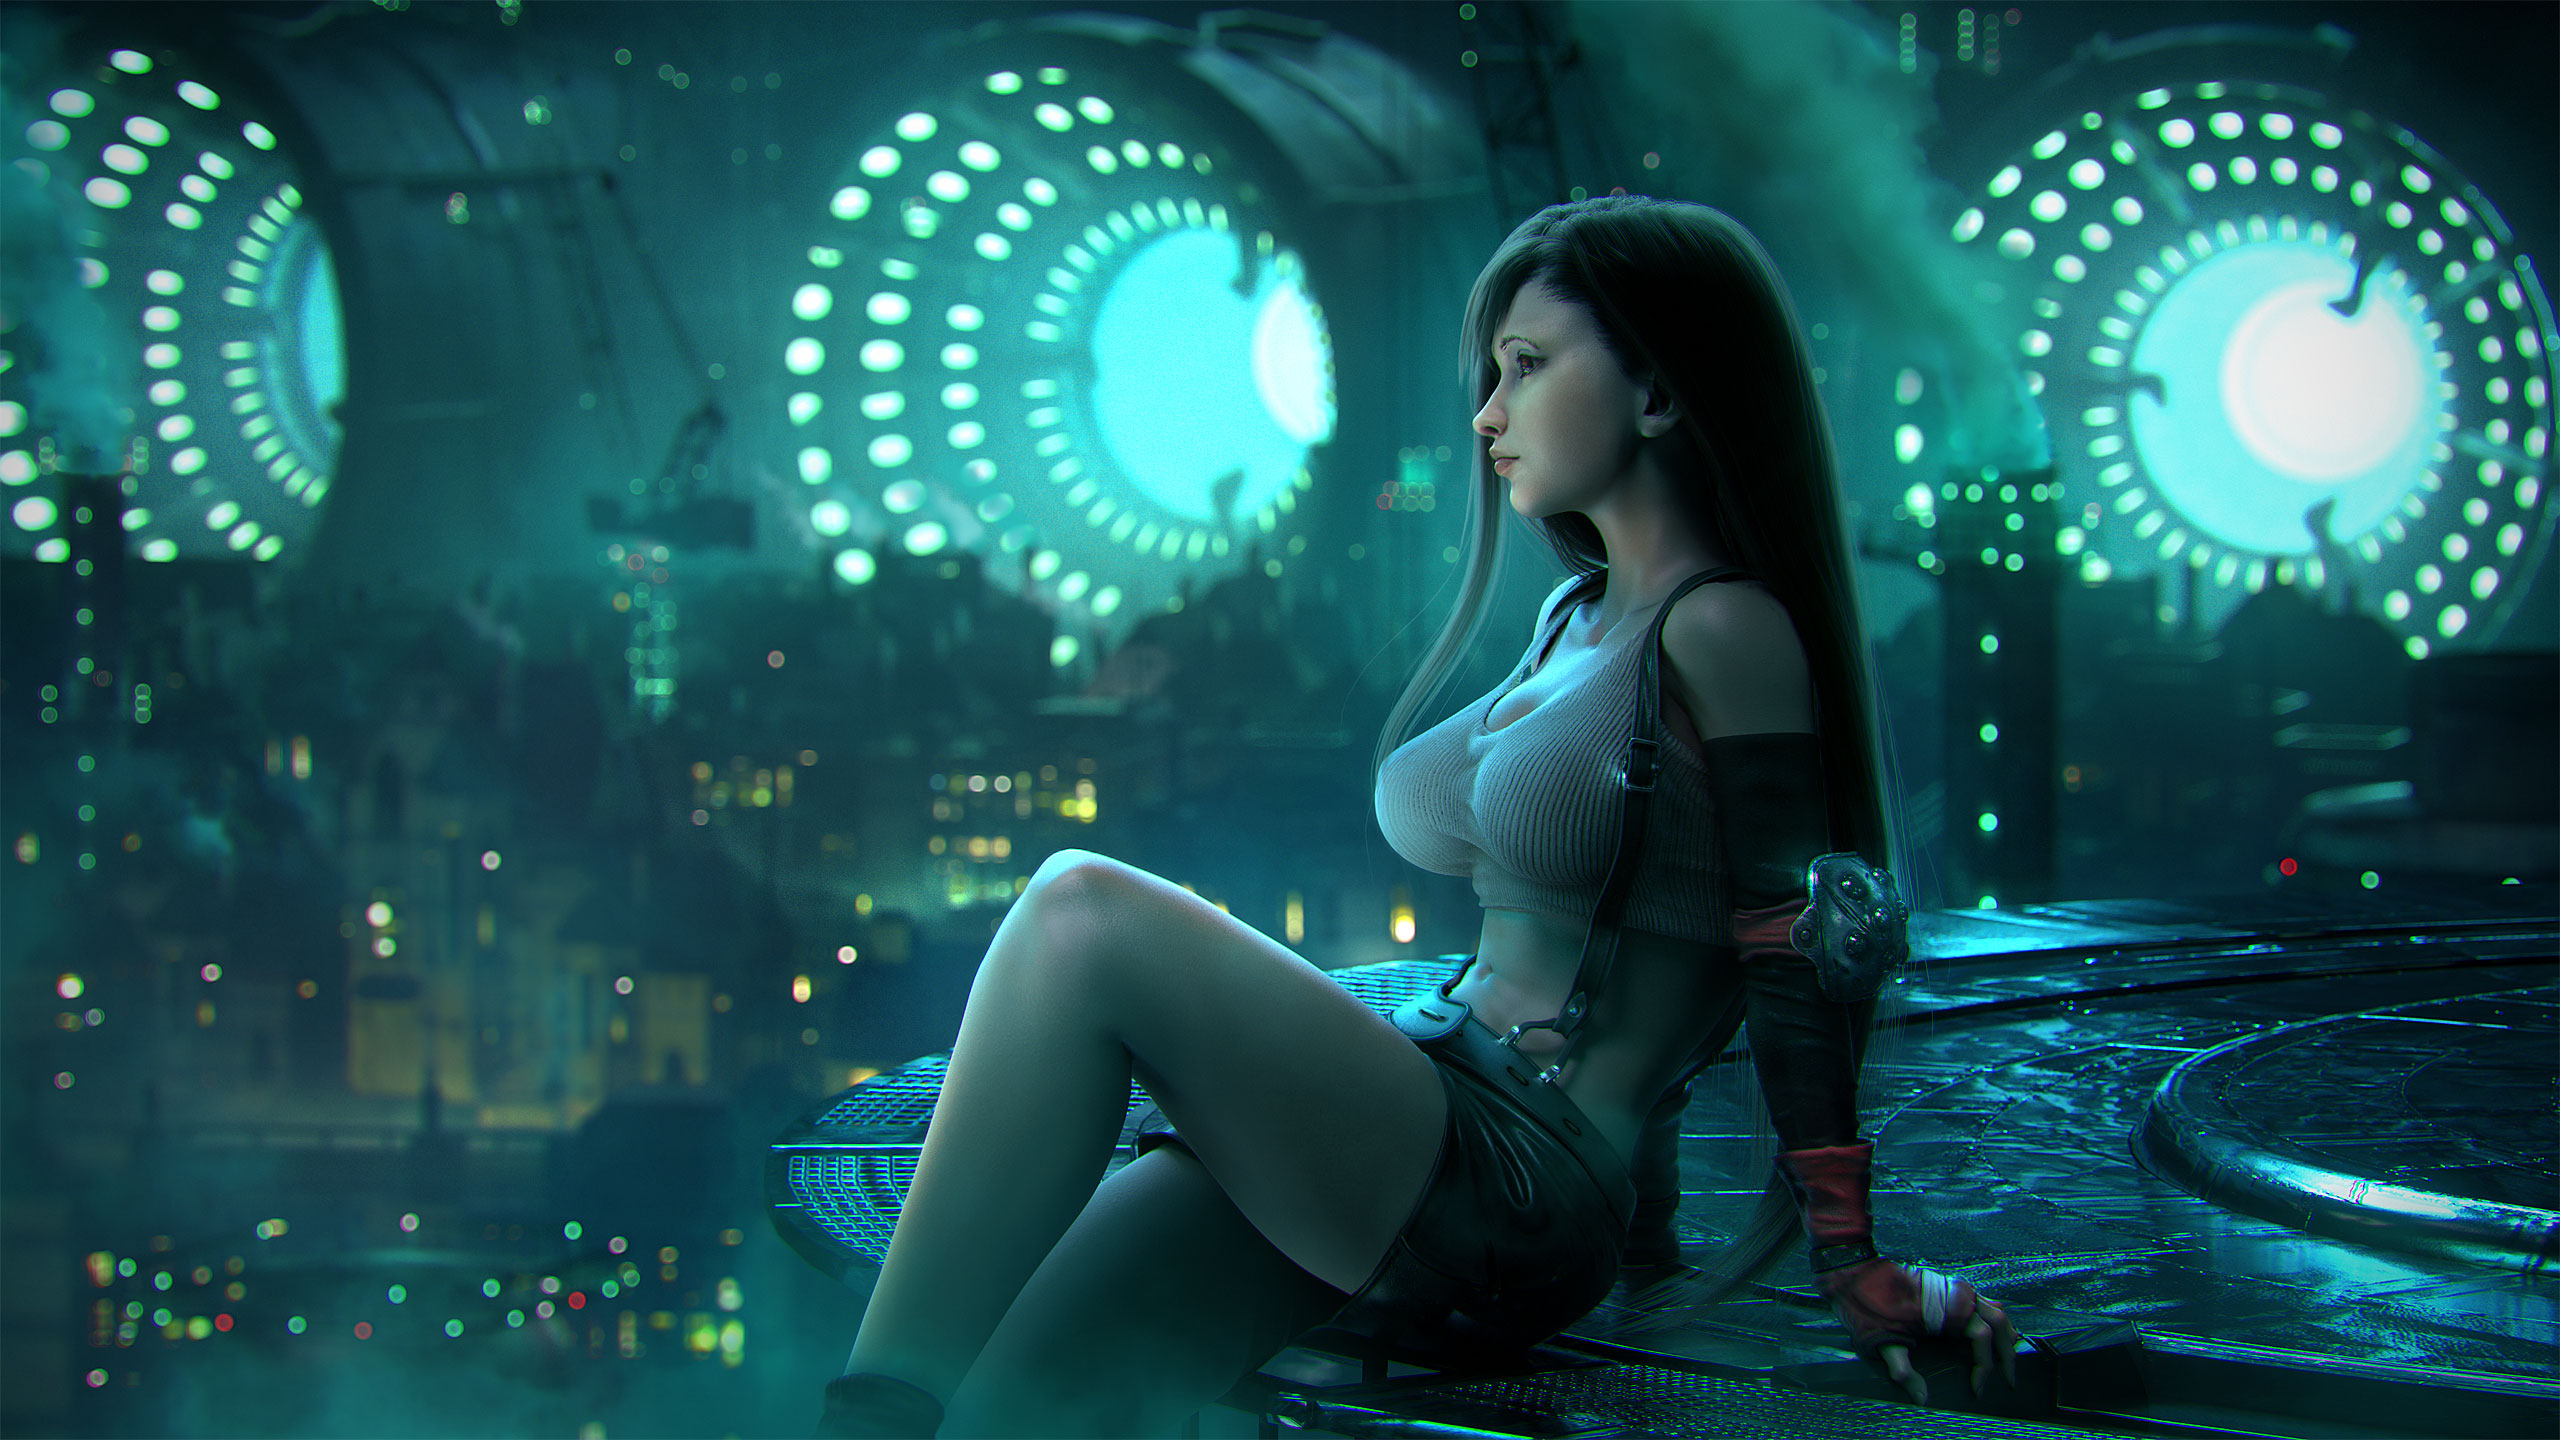 Final Fantasy Xv 4k Ultra Hd Wallpaper: Tifa Lockhart Final Fantasy Artwork, HD Fantasy Girls, 4k